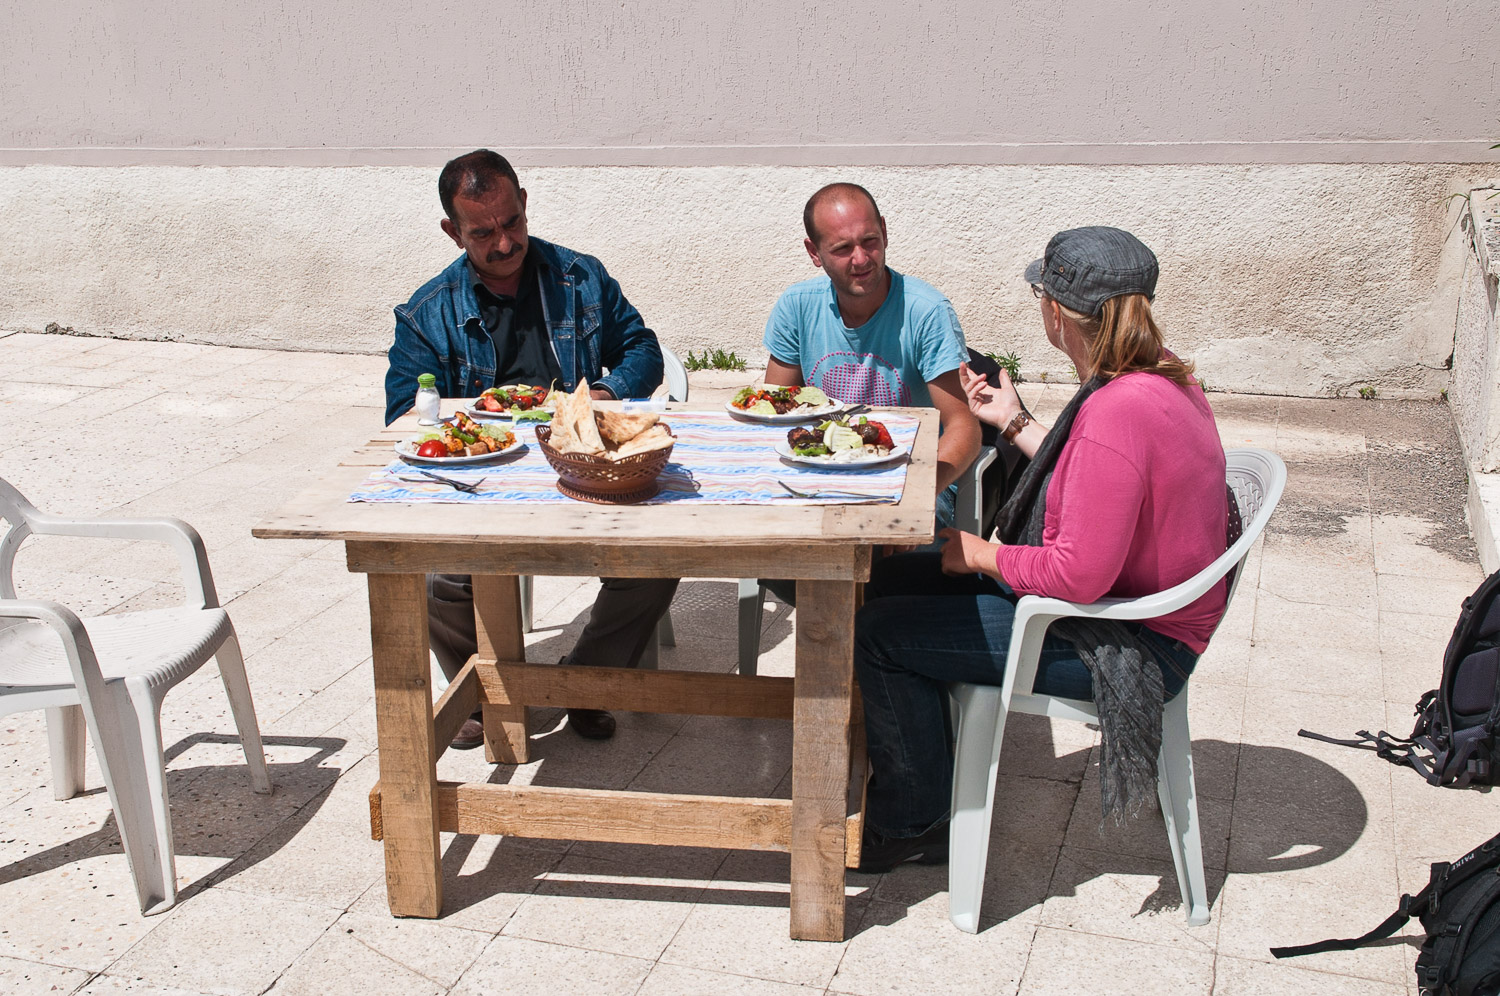 Tourists and guide eating lunch, near Kars Turkey.